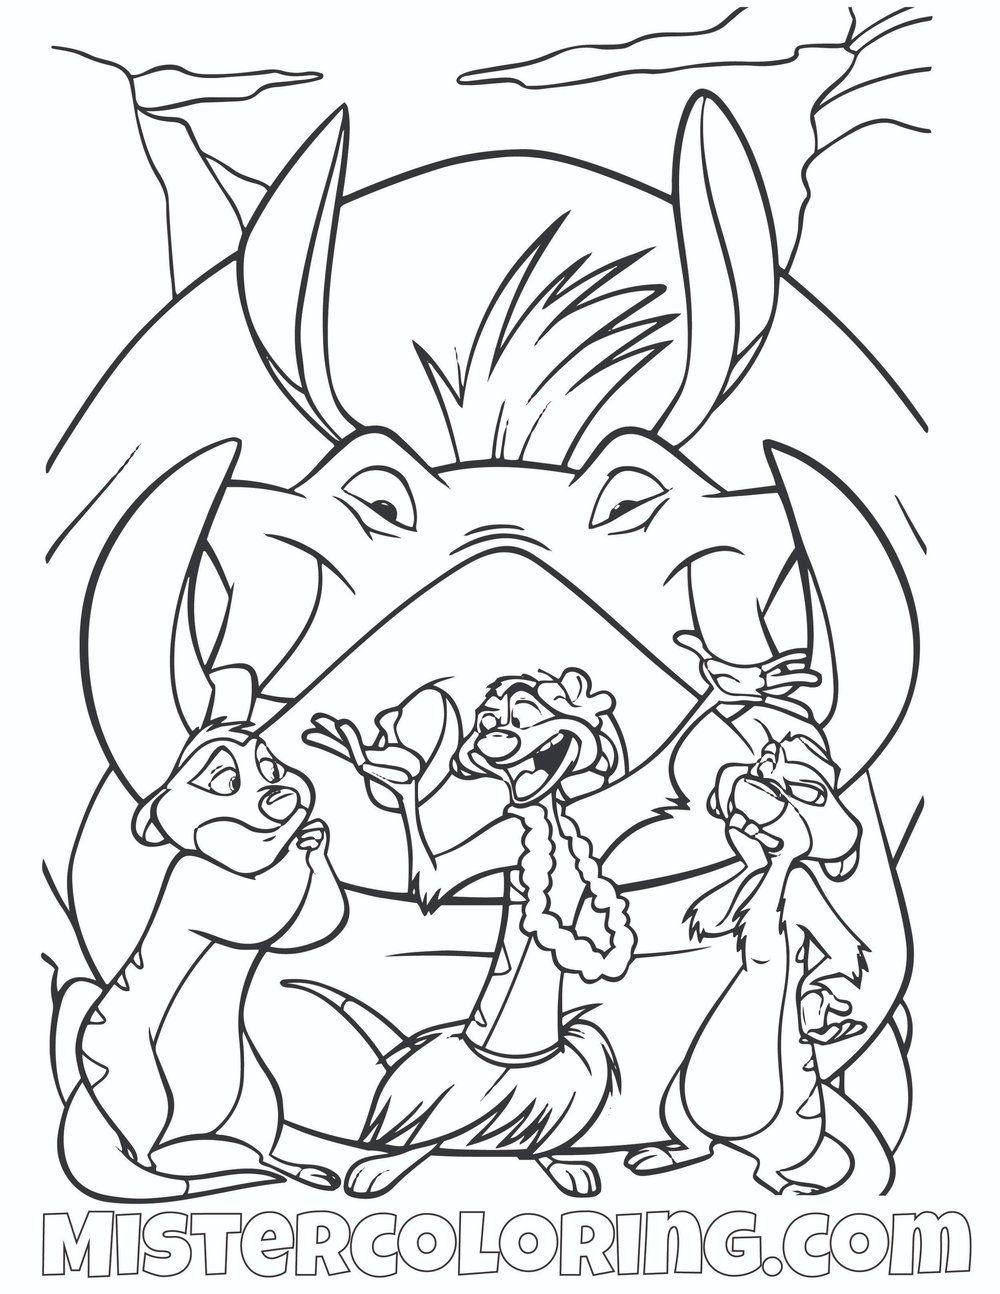 - Pin By Mister Cijo On The Lion King Coloring Pages For Kids King